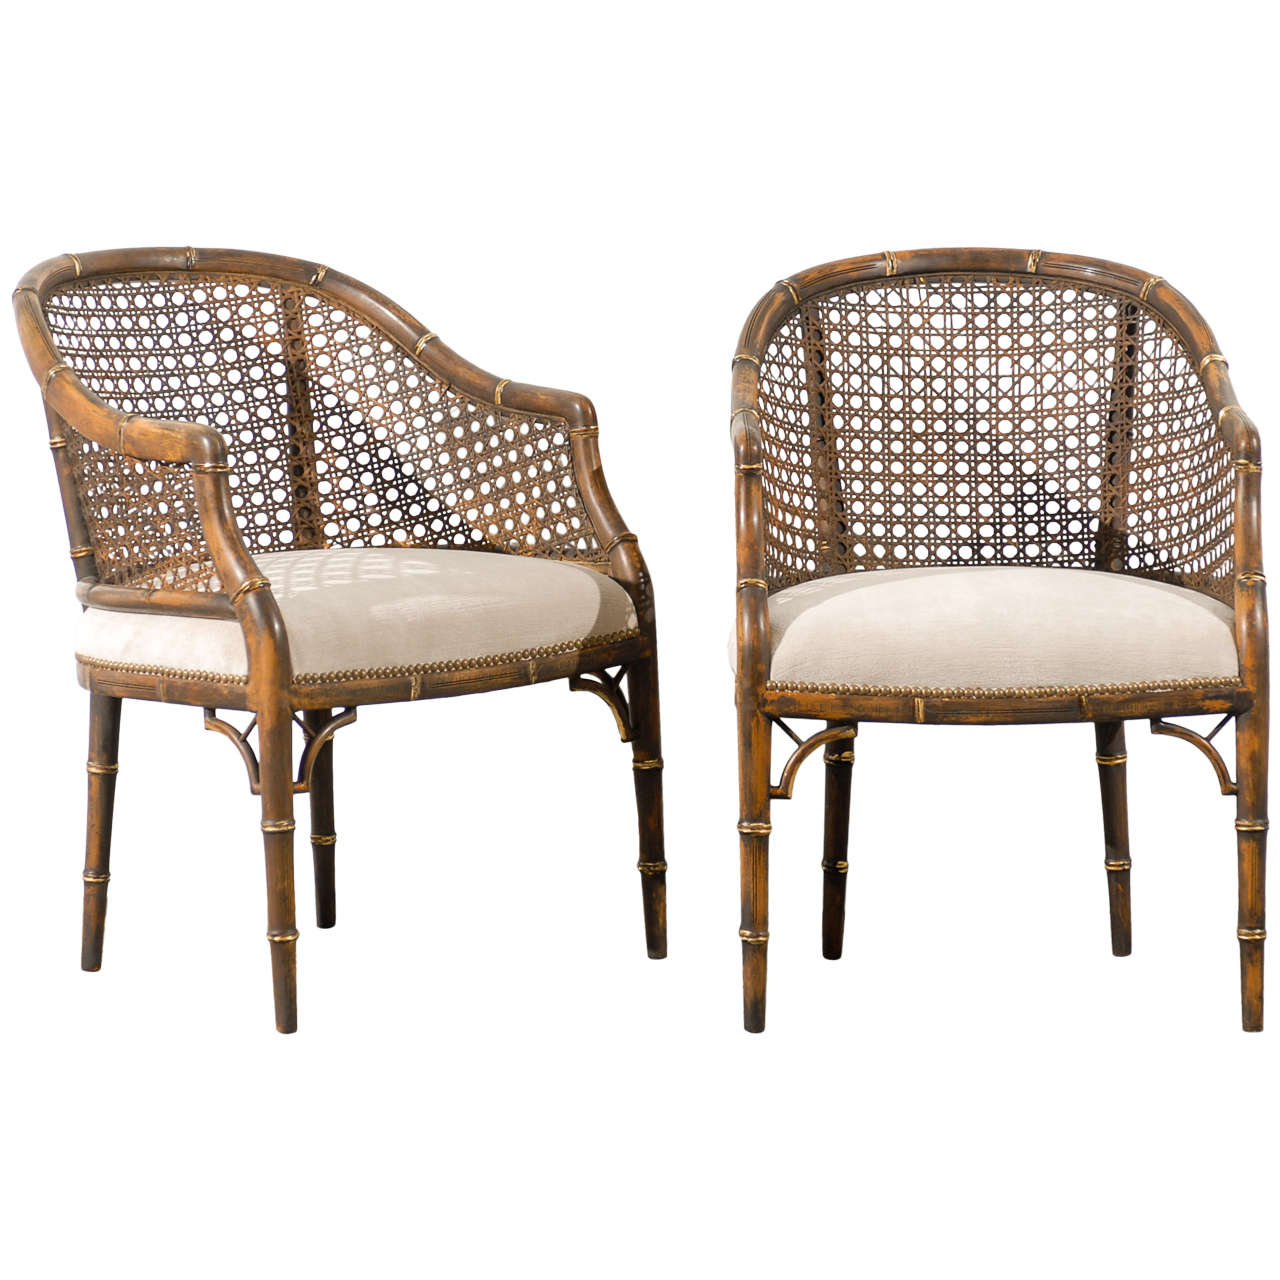 Vintage Bamboo Chair on Ficks Reed Rattan Sofa